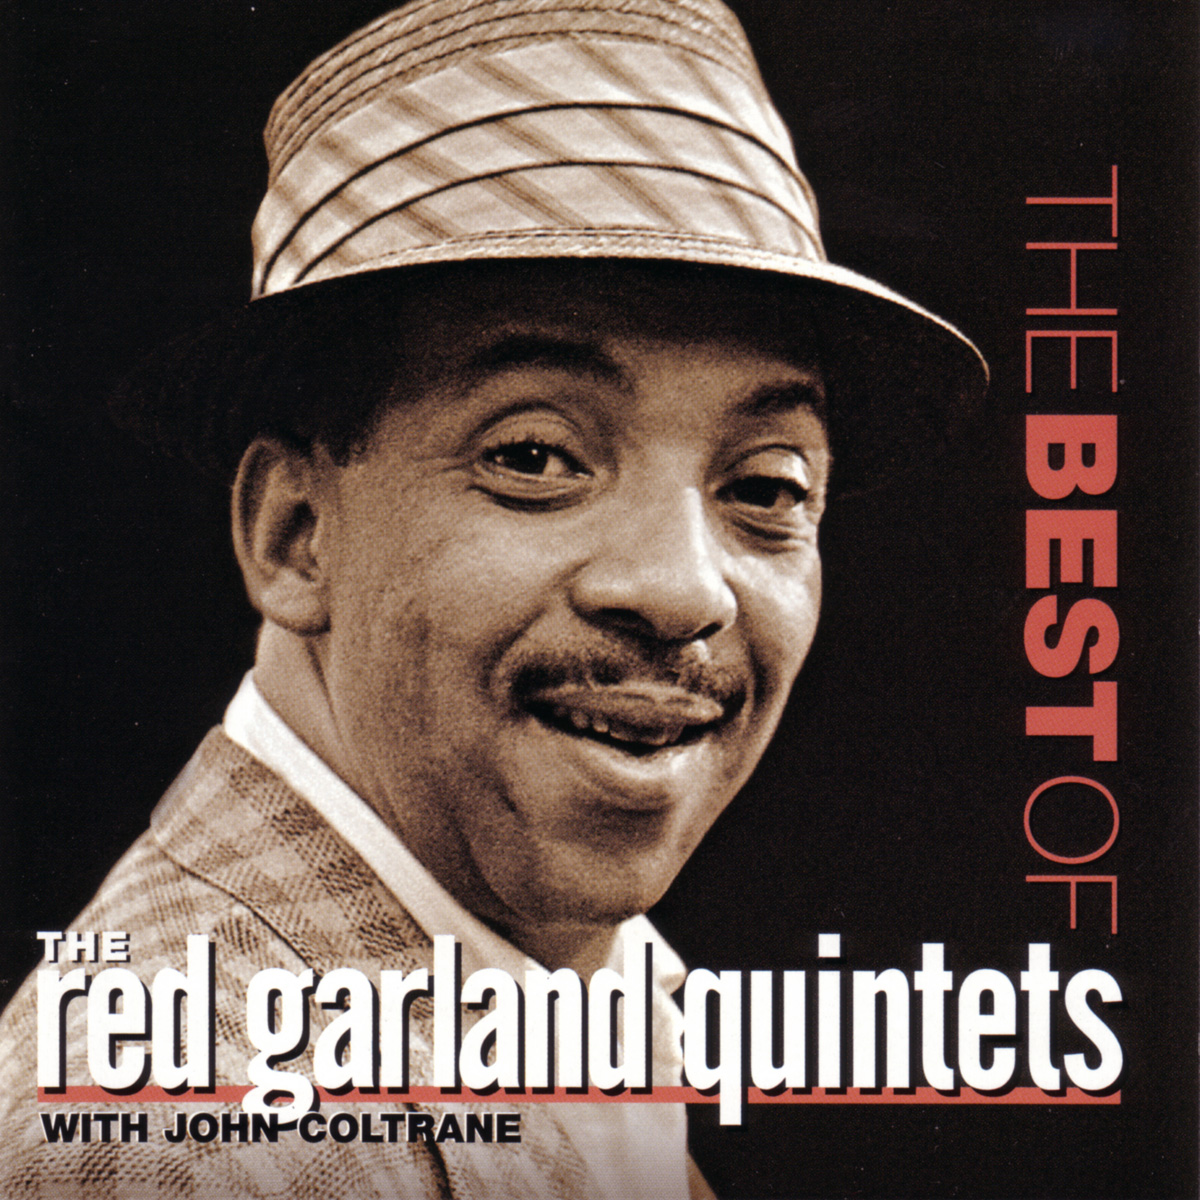 RED-QUINTET-GARLAND-Best-of-the-Red-Garland-Quintets